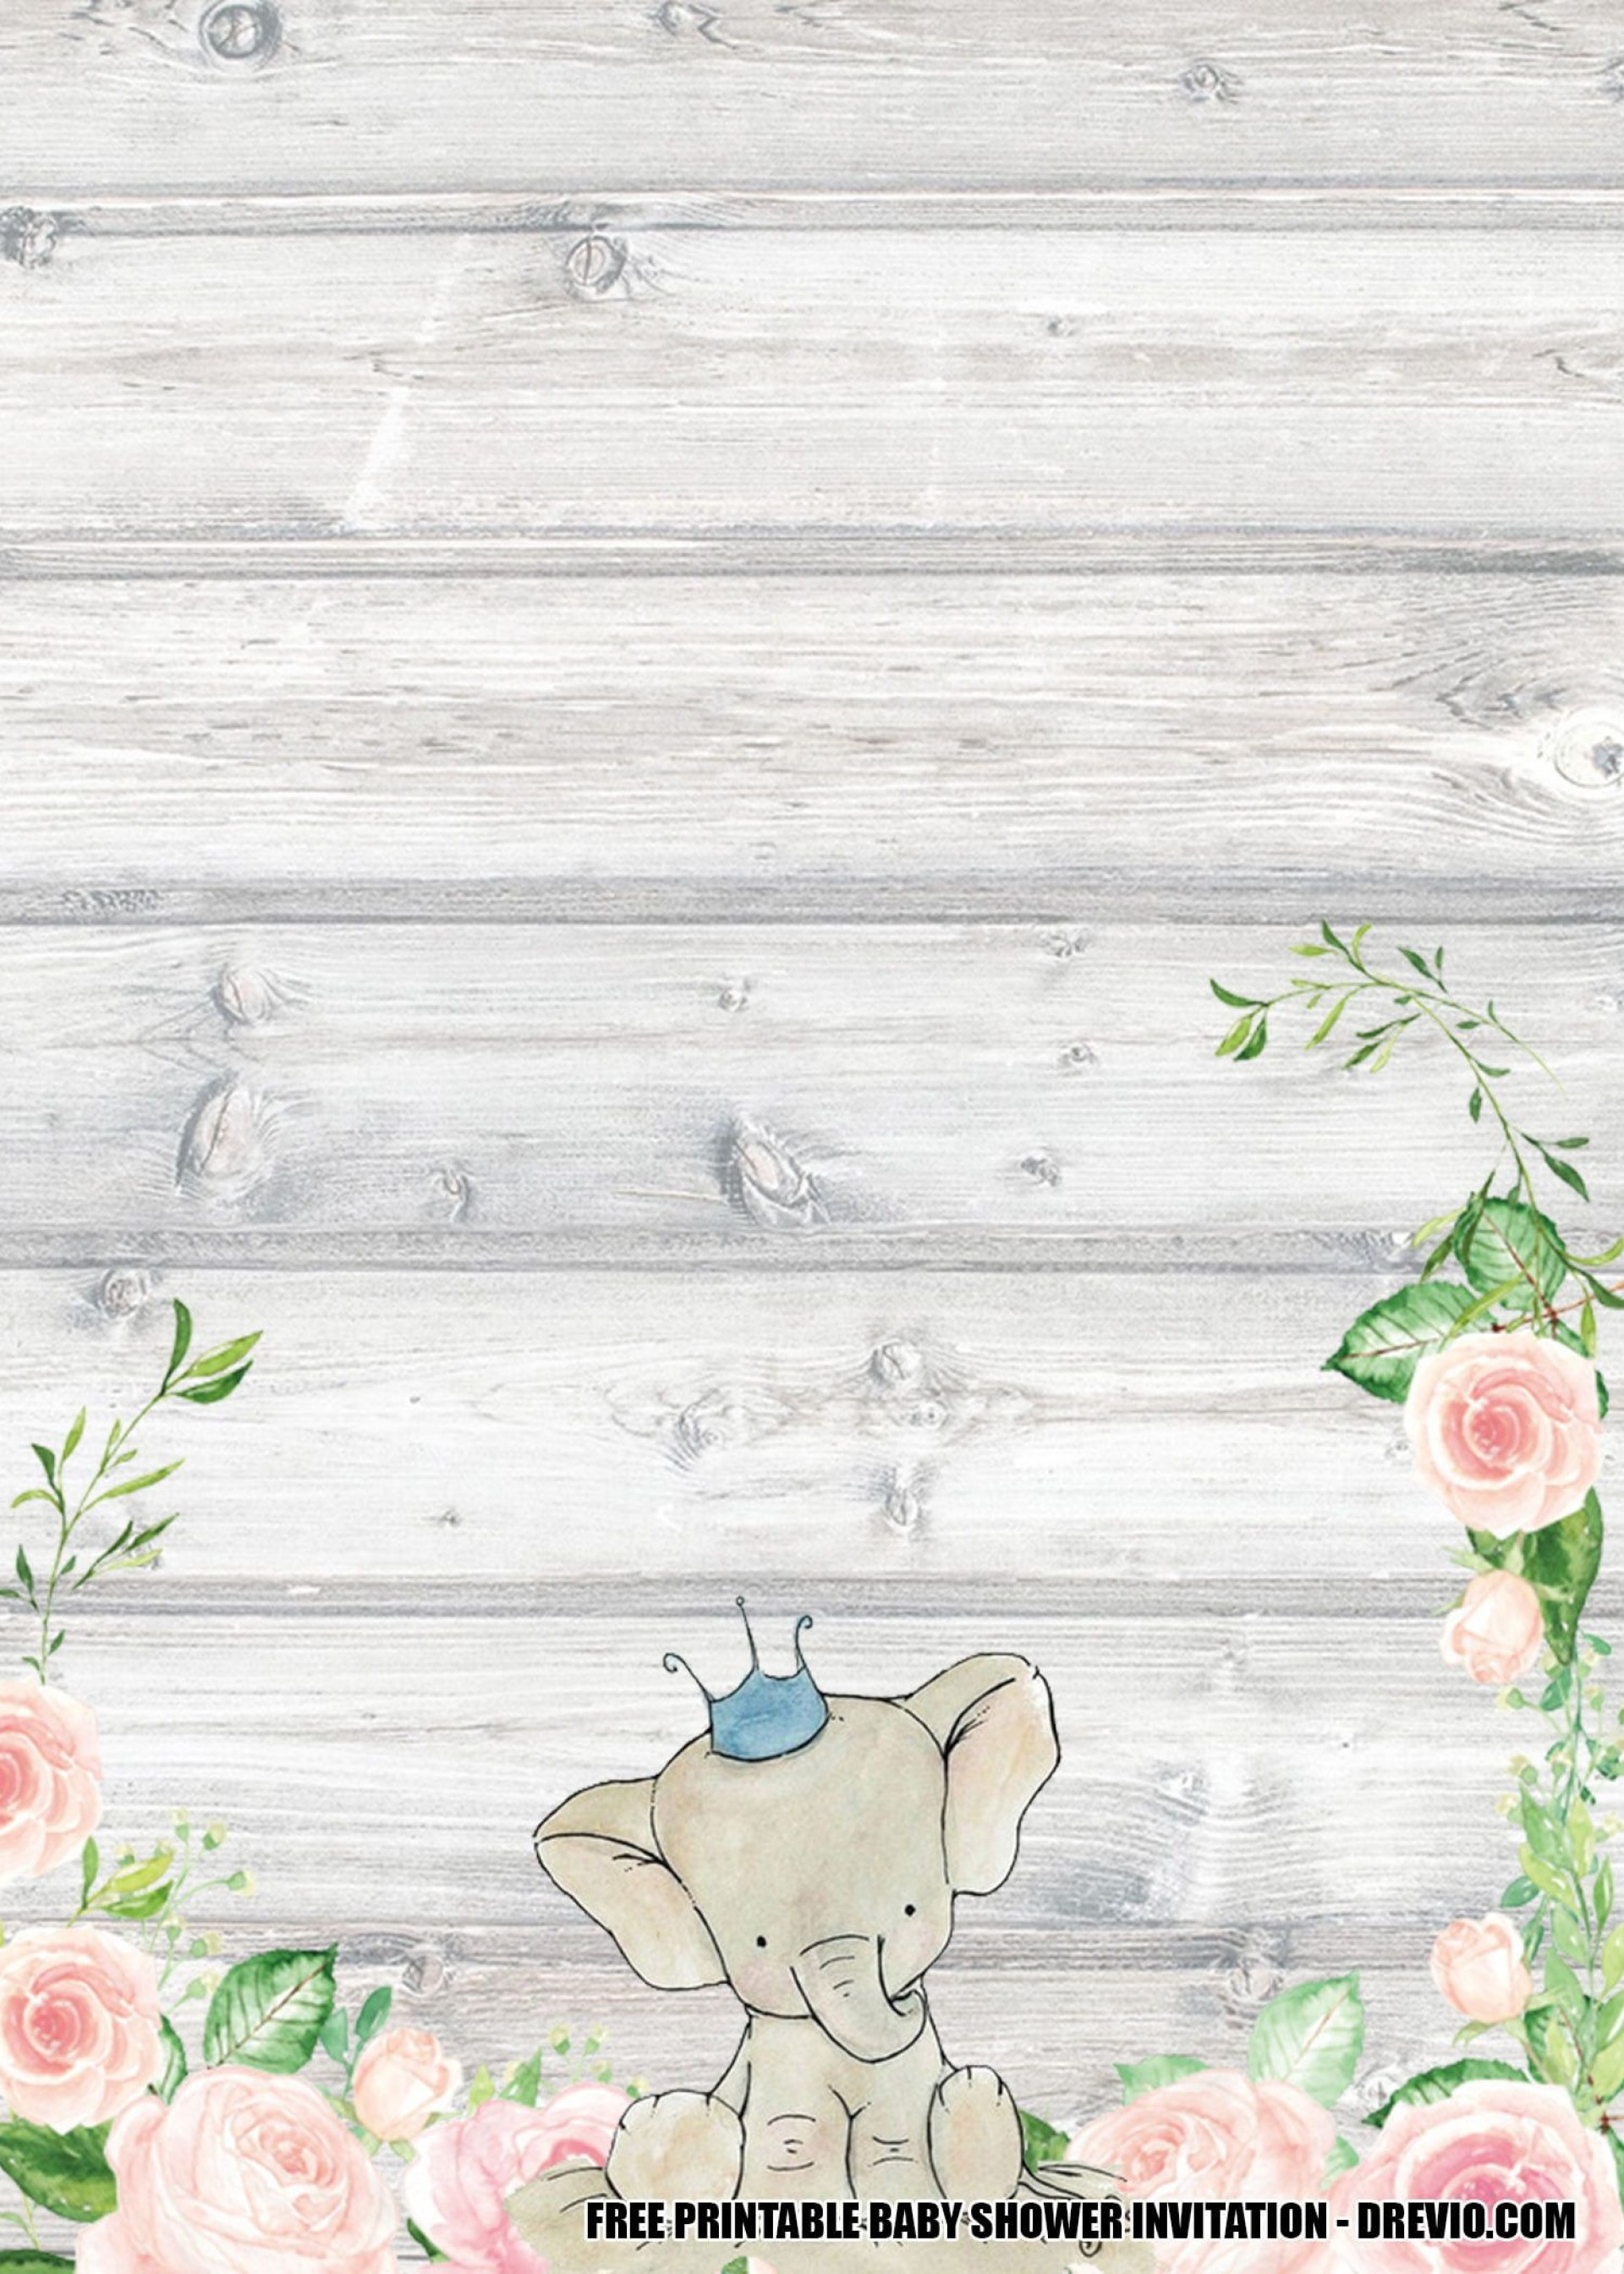 008 Outstanding Free Baby Shower Printable Elephant Highest Quality  Decoration1920